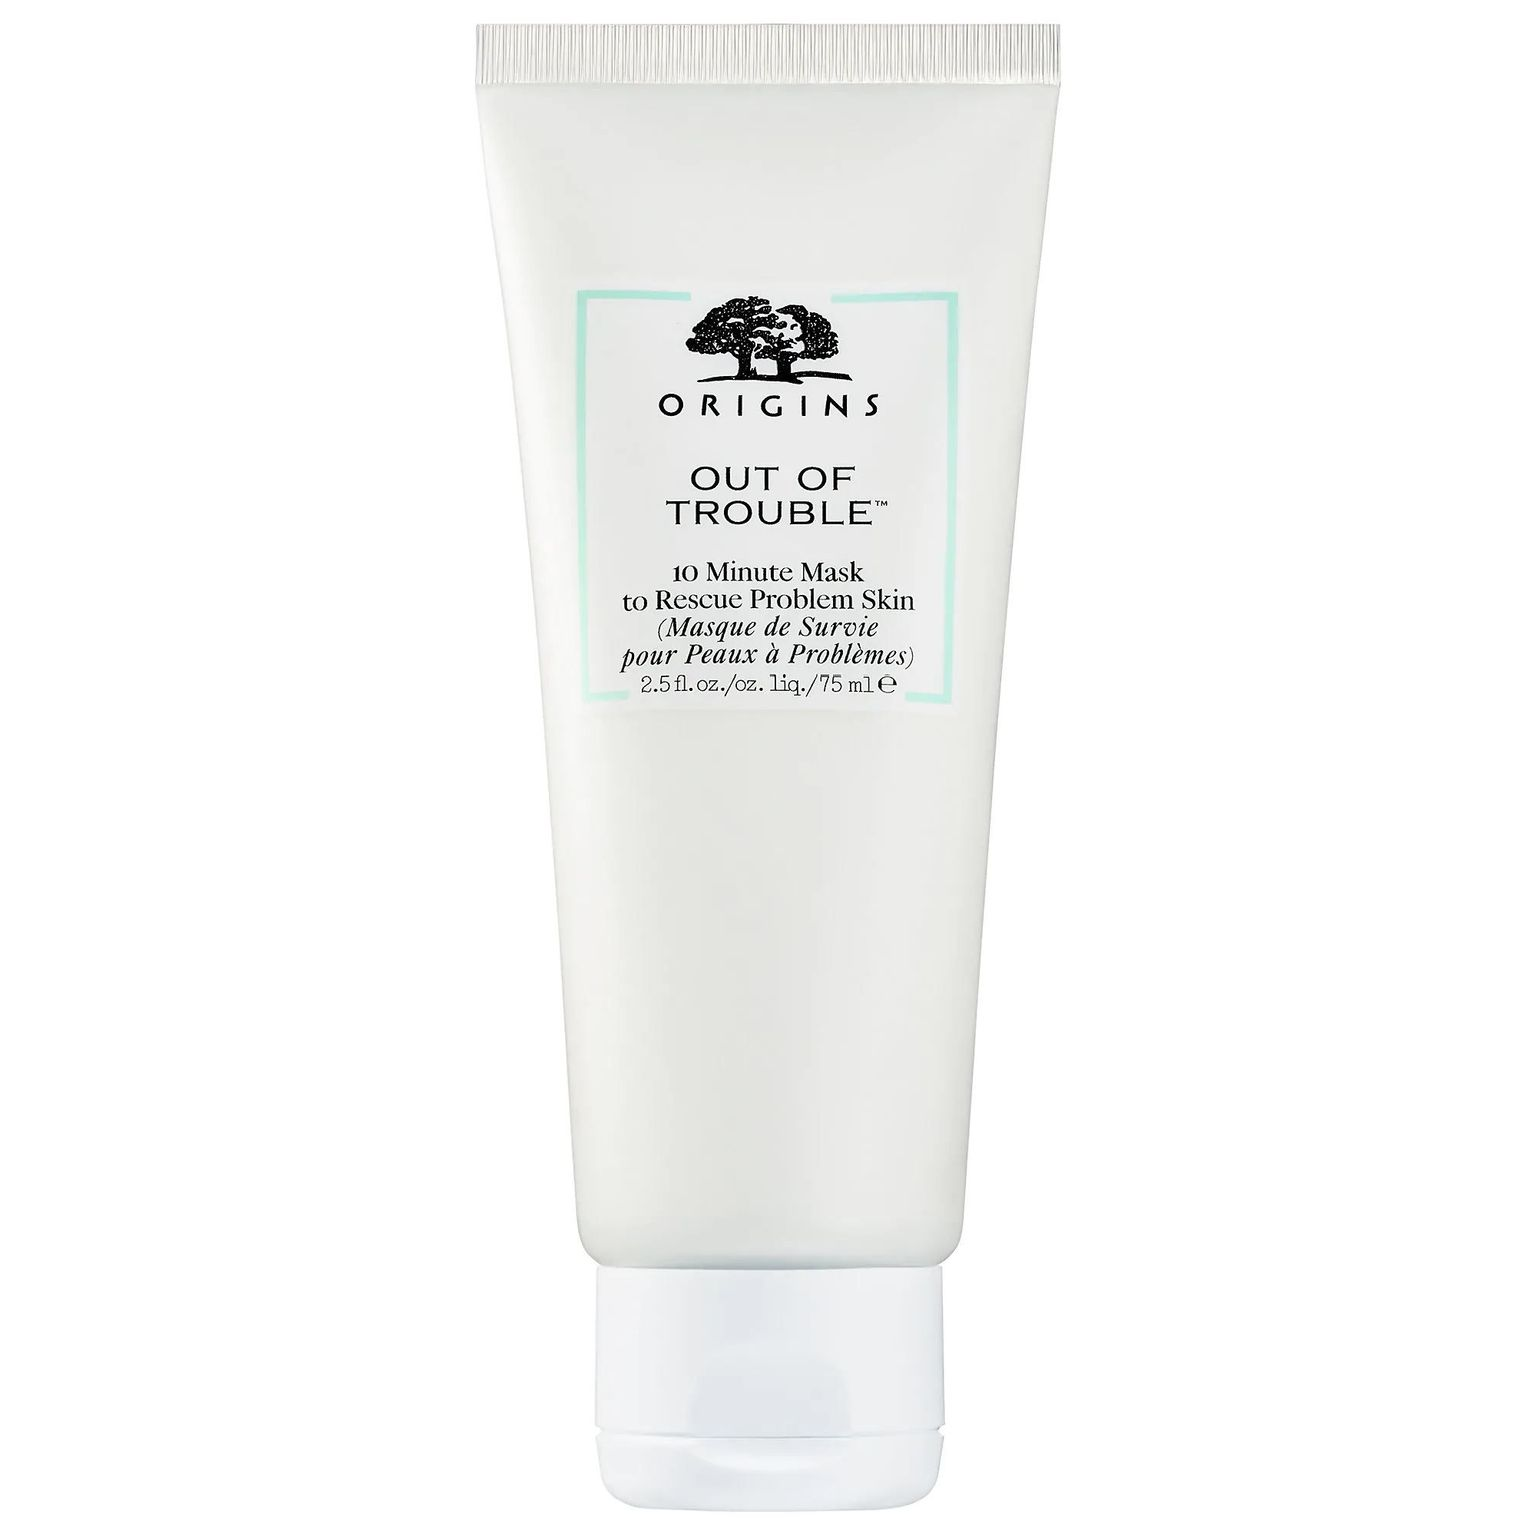 ORIGINS OUT OF TROUBLE™ 10 Minute Mask To Rescue Problem Skin reviews,  photos, ingredients - MakeupAlley